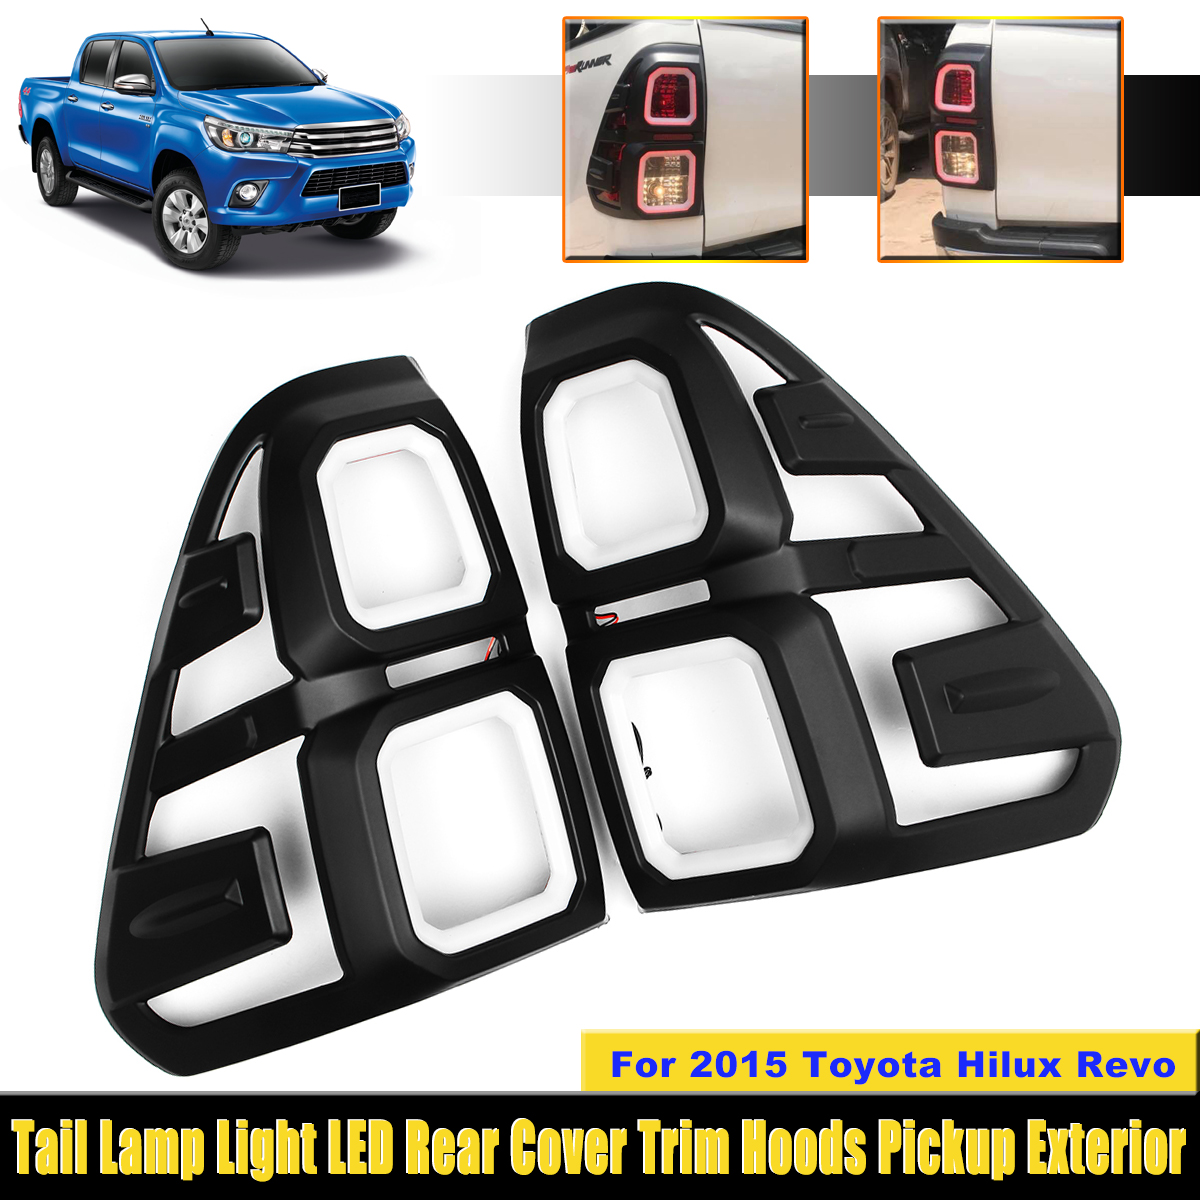 LED Rear Tail Lamp Lights Cover For Toyota Hilux Revo 2015 LED Lamp Hoods Brake Lights Trim Hoods Pickup Auto Accessories 2015 2017 car wind deflector awnings shelters for hilux vigo revo black window deflector guard rain shield fit for hilux revo